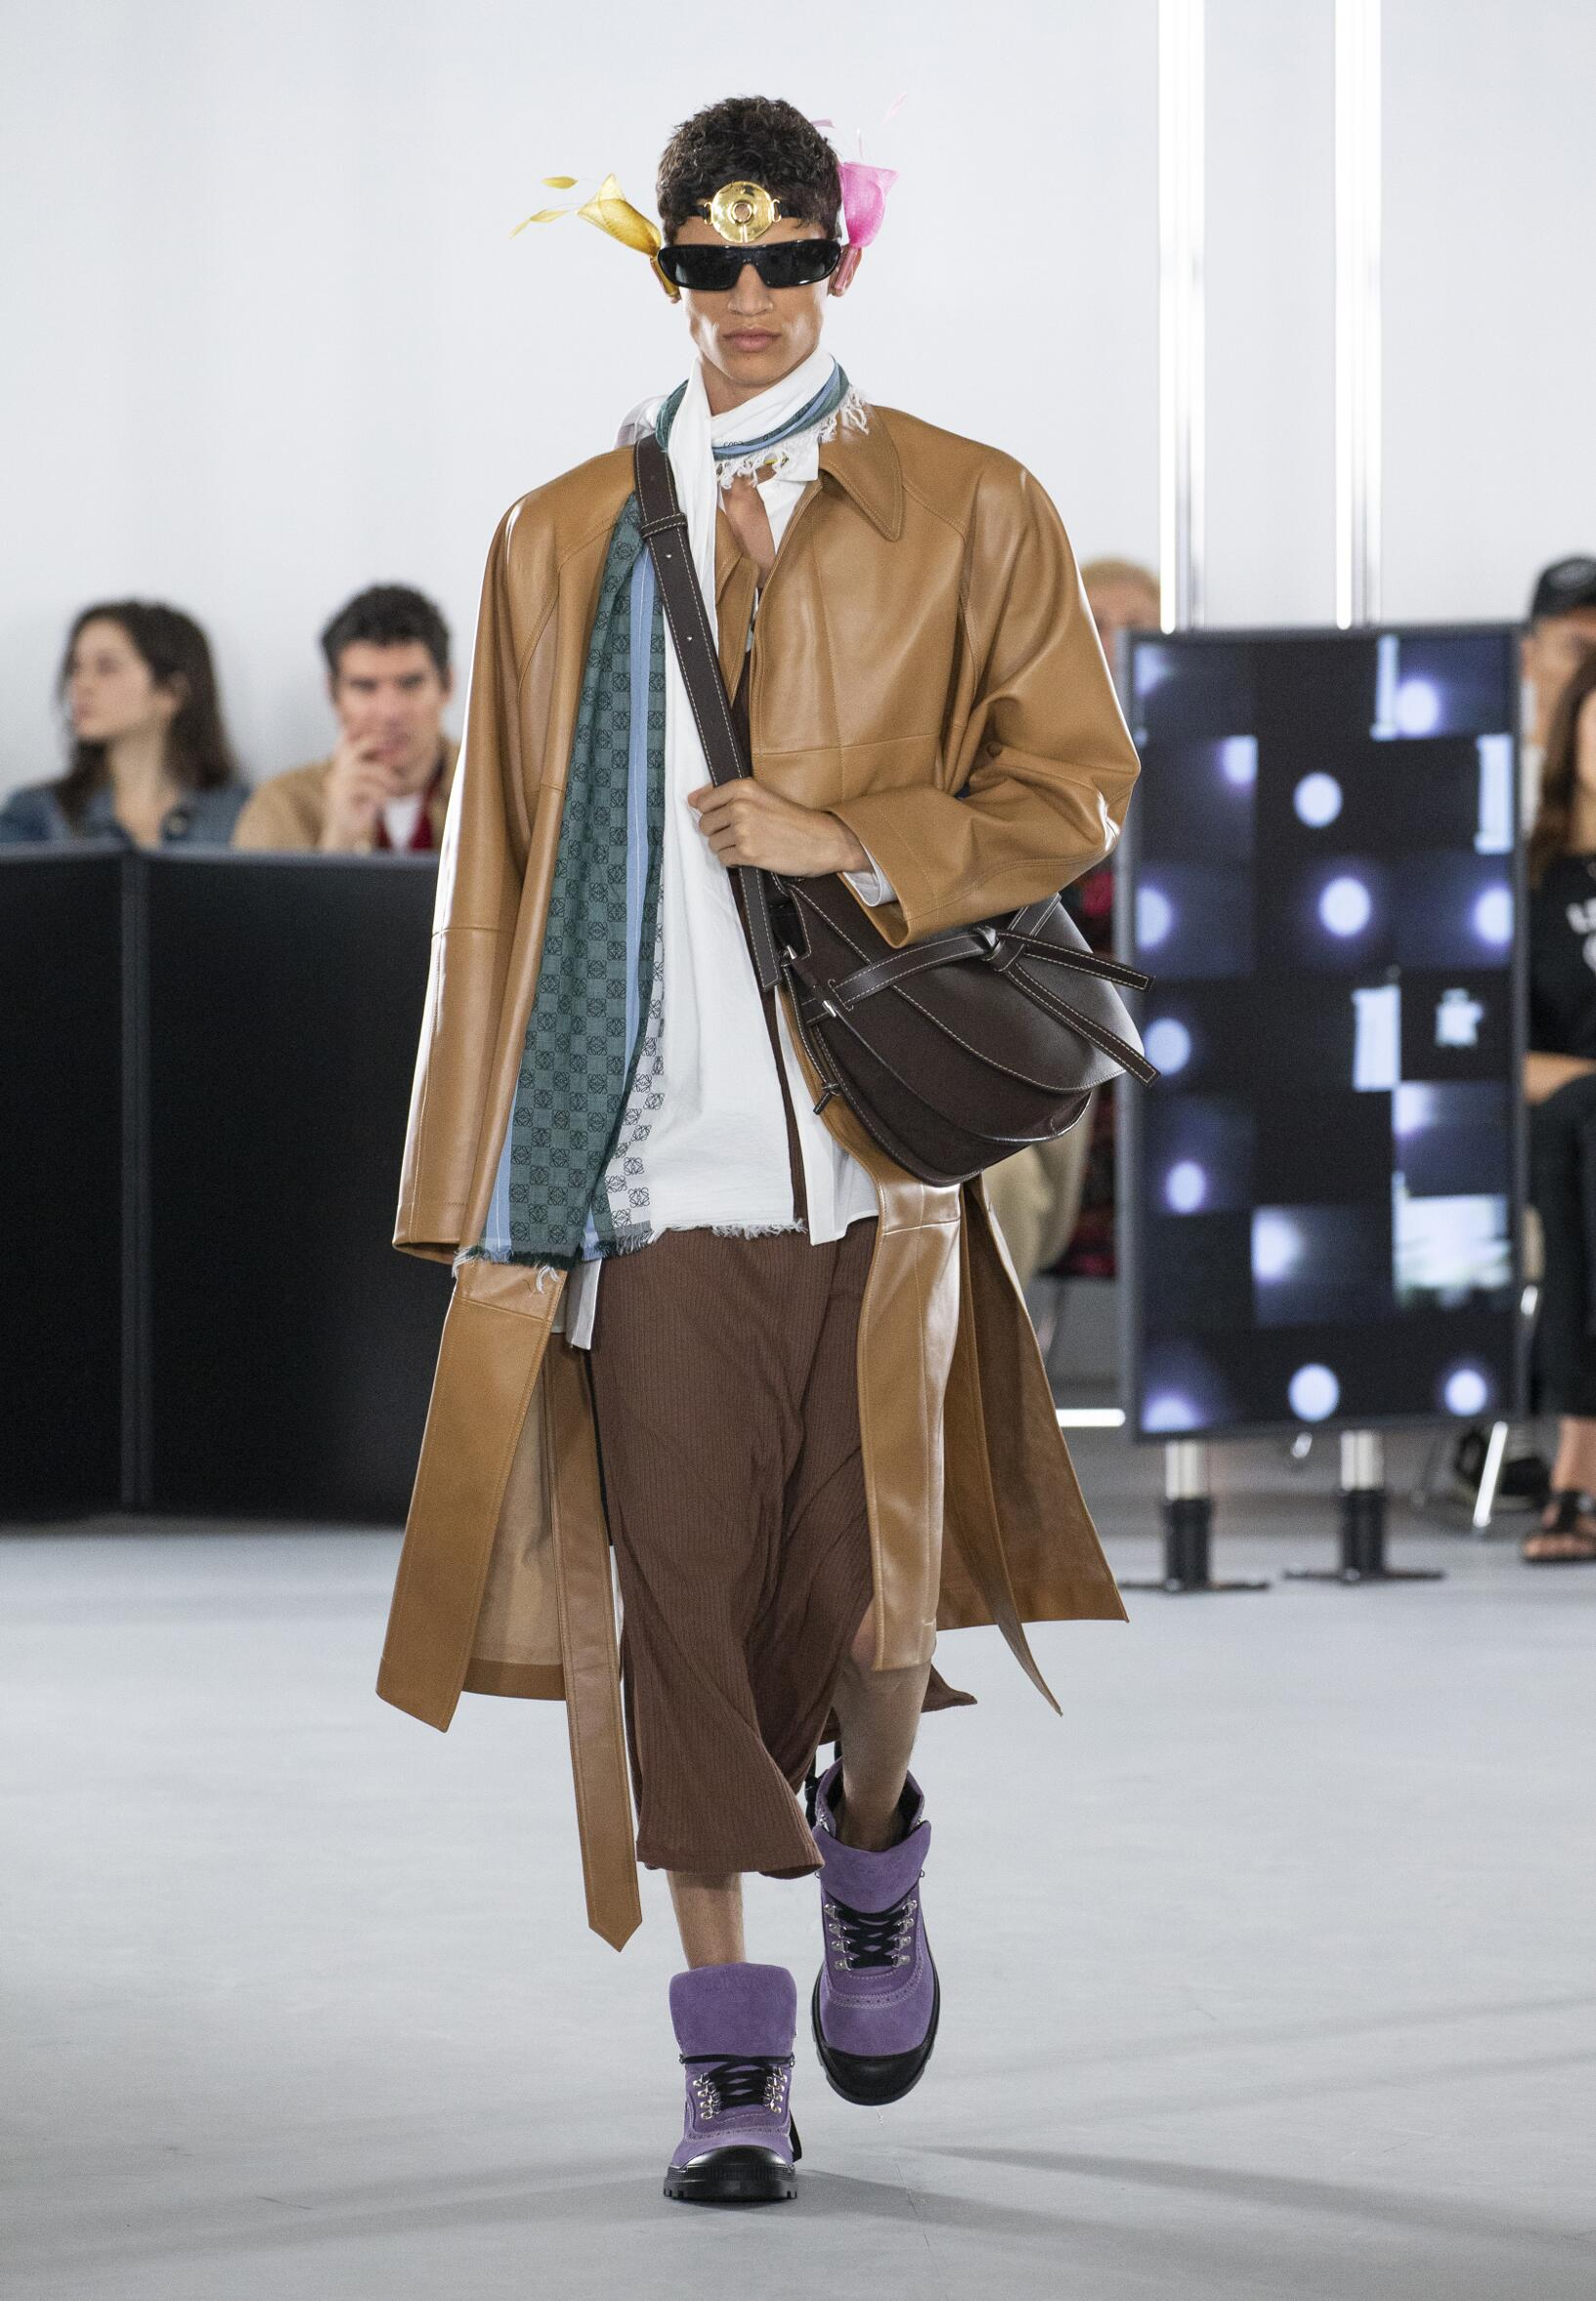 LOEWE SPRING SUMMER 2020 MEN'S COLLECTION | The Skinny Beep